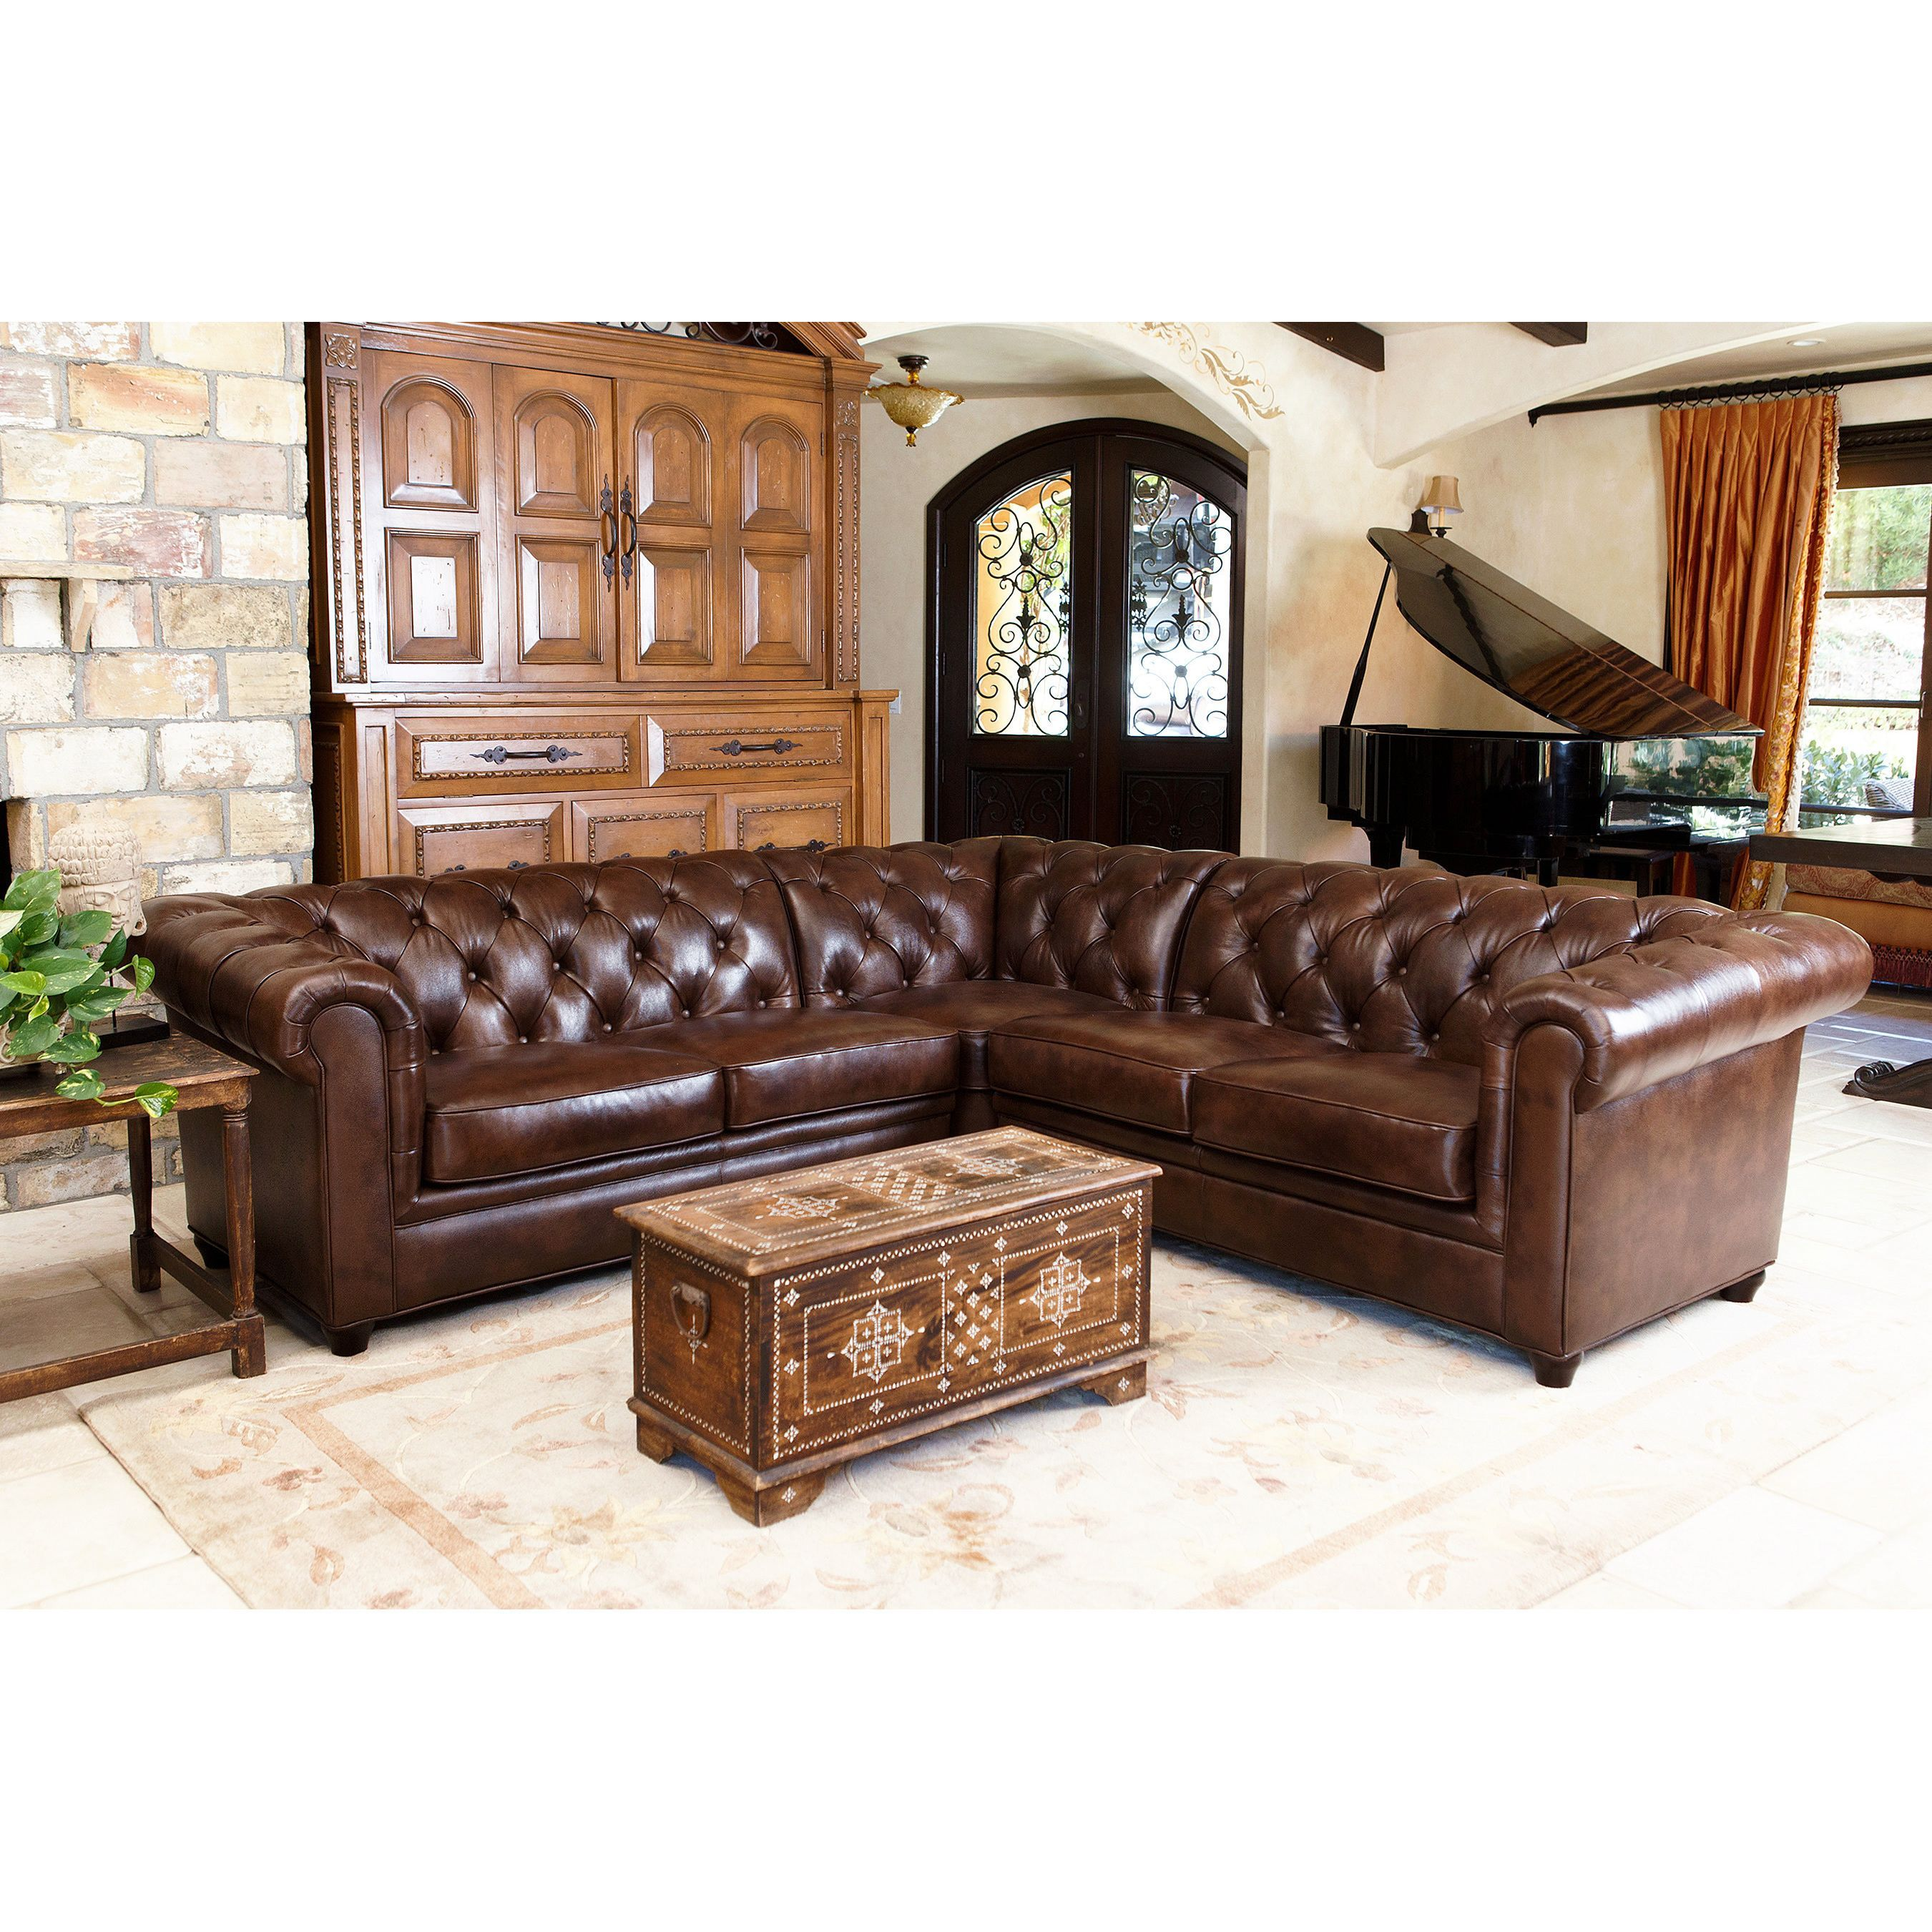 8 piece leather sectional sofa macy s decorative pillows the tuscan tufted three is upholstered in